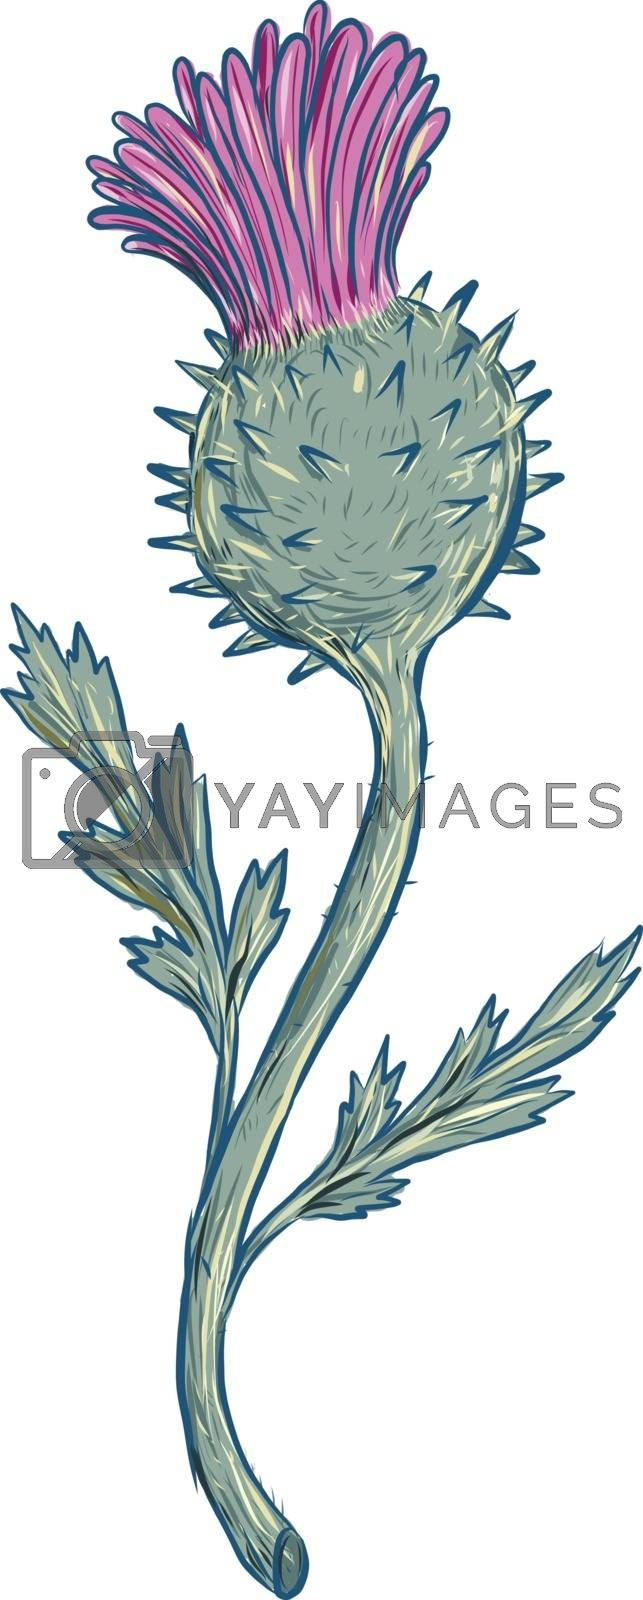 Drawing sketch style illustration of Scottish Thistle, a flowering plant with sharp prickles in the family Asteraceae on isolated background.